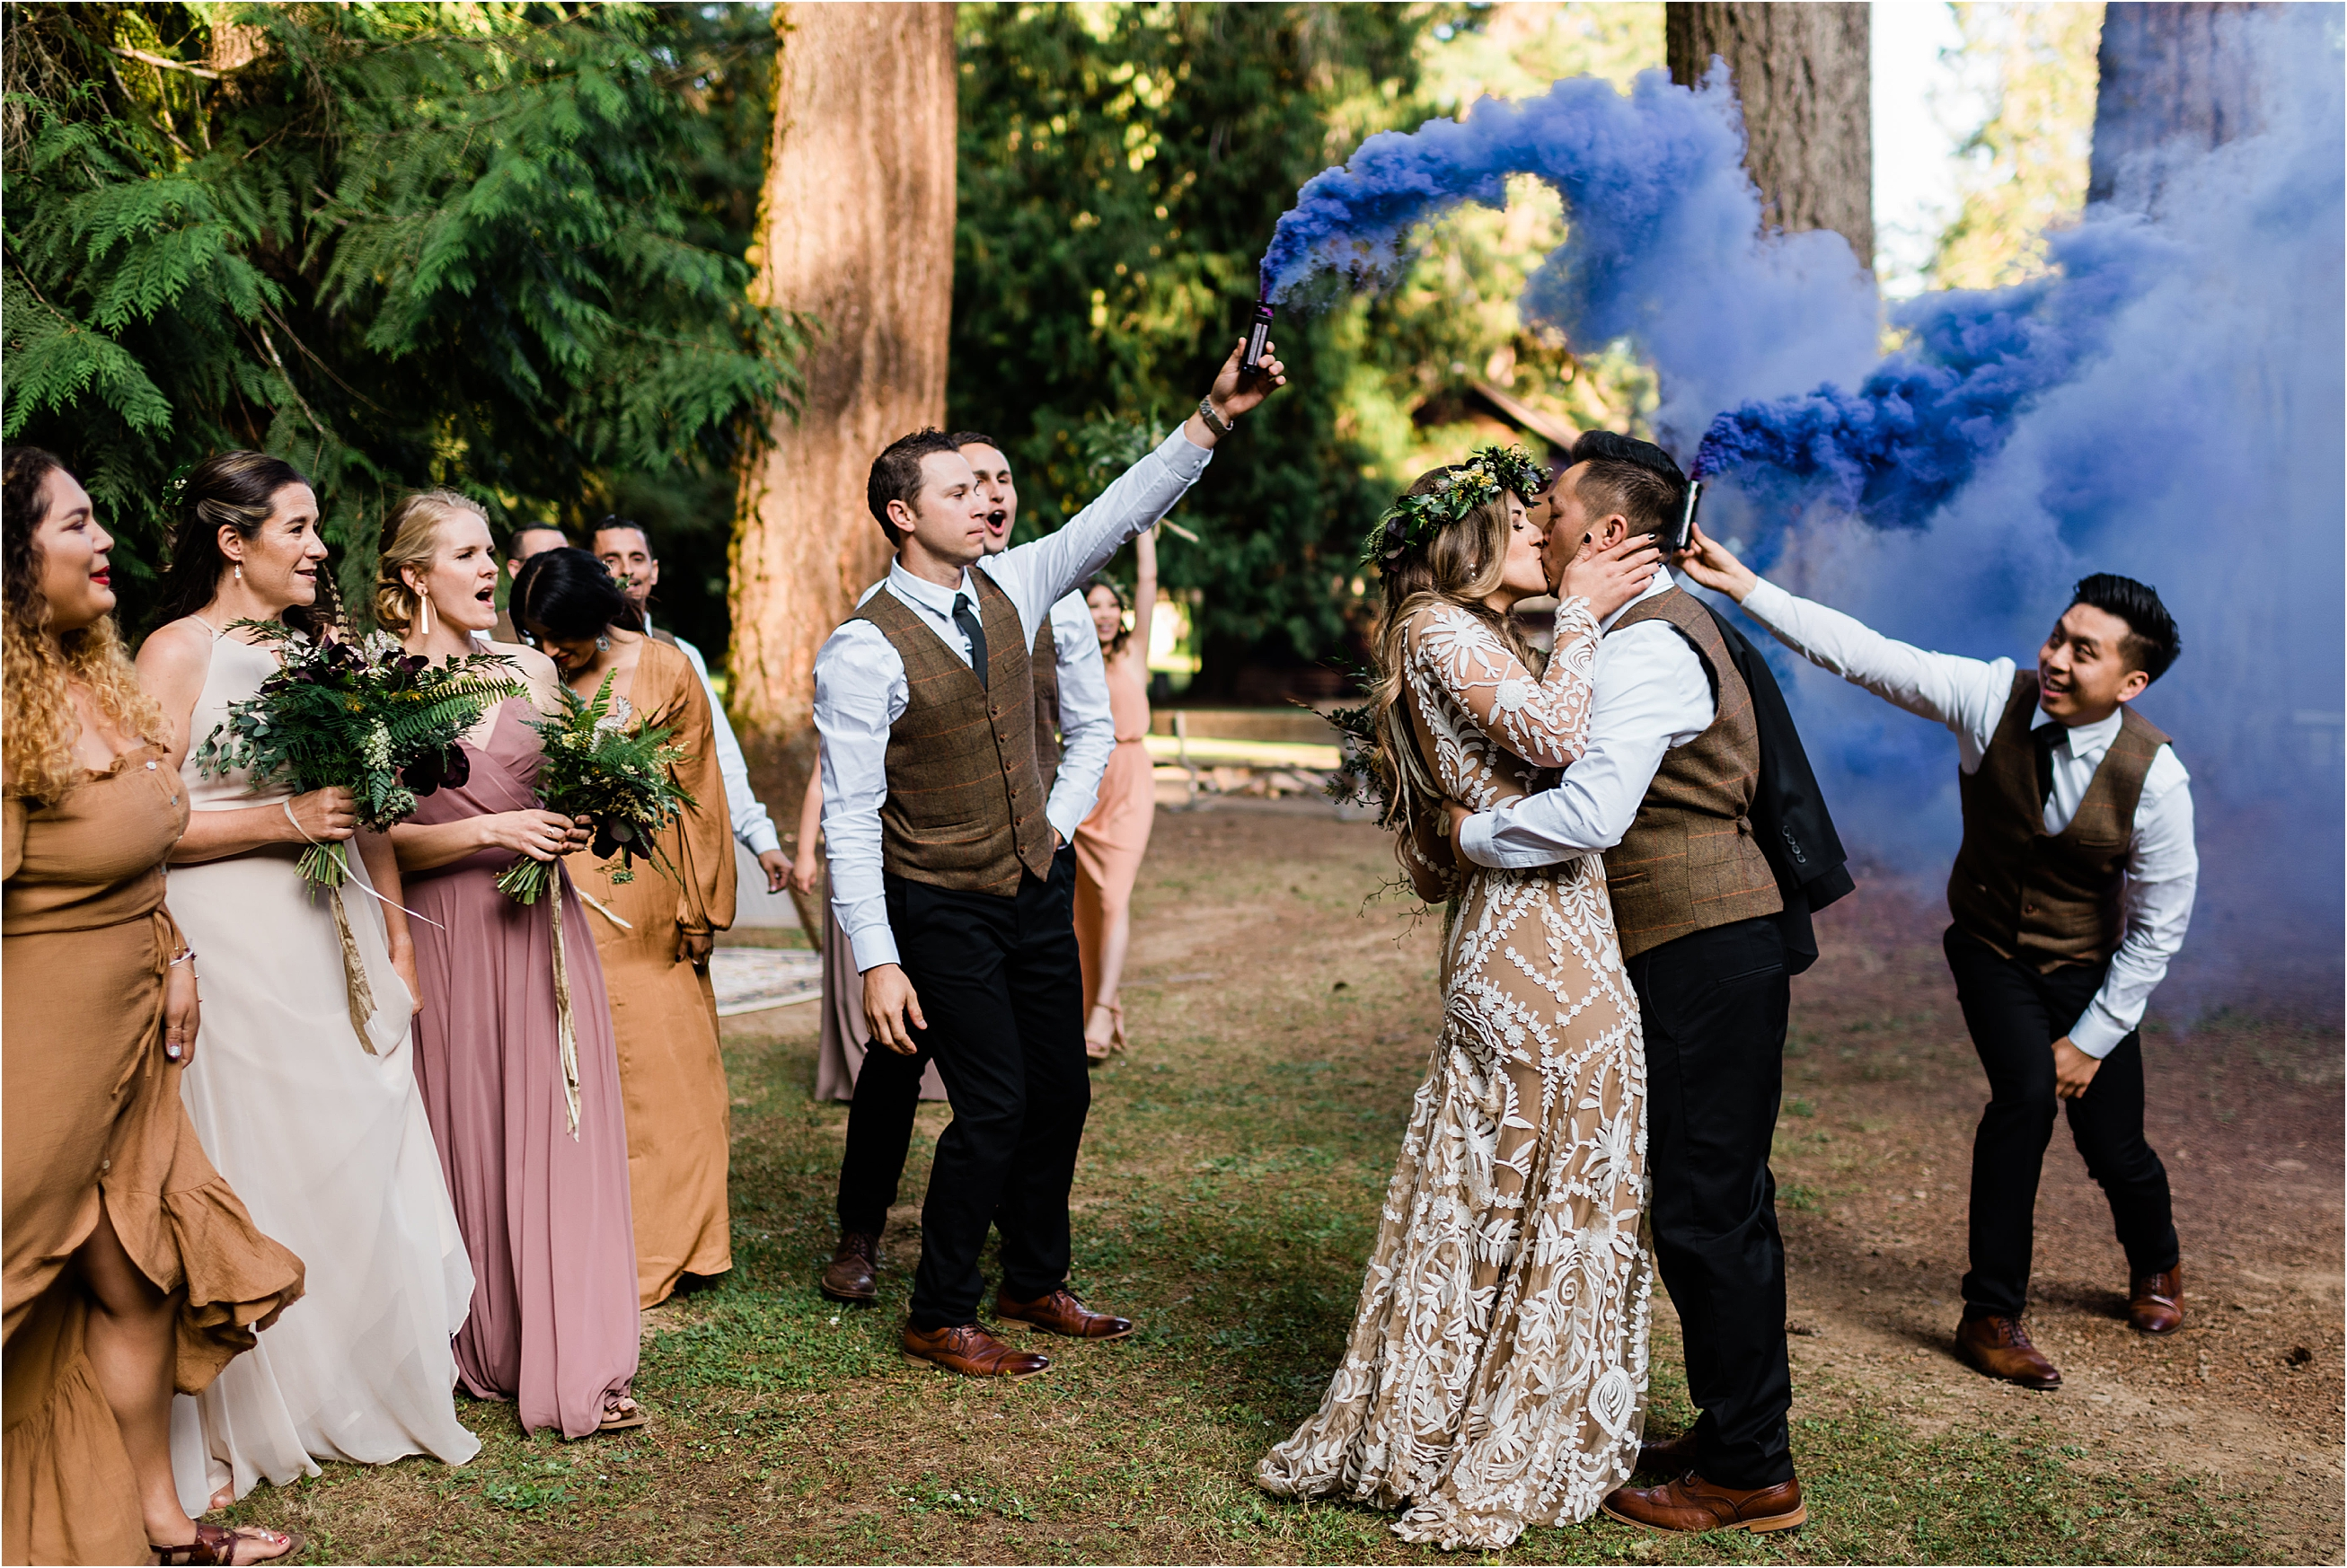 Purple smoke bomb Bride and Groom grand entrance at Cassy & Viva's bohemian Oregon destination wedding at Camp Lane. Image by Forthright Photo.